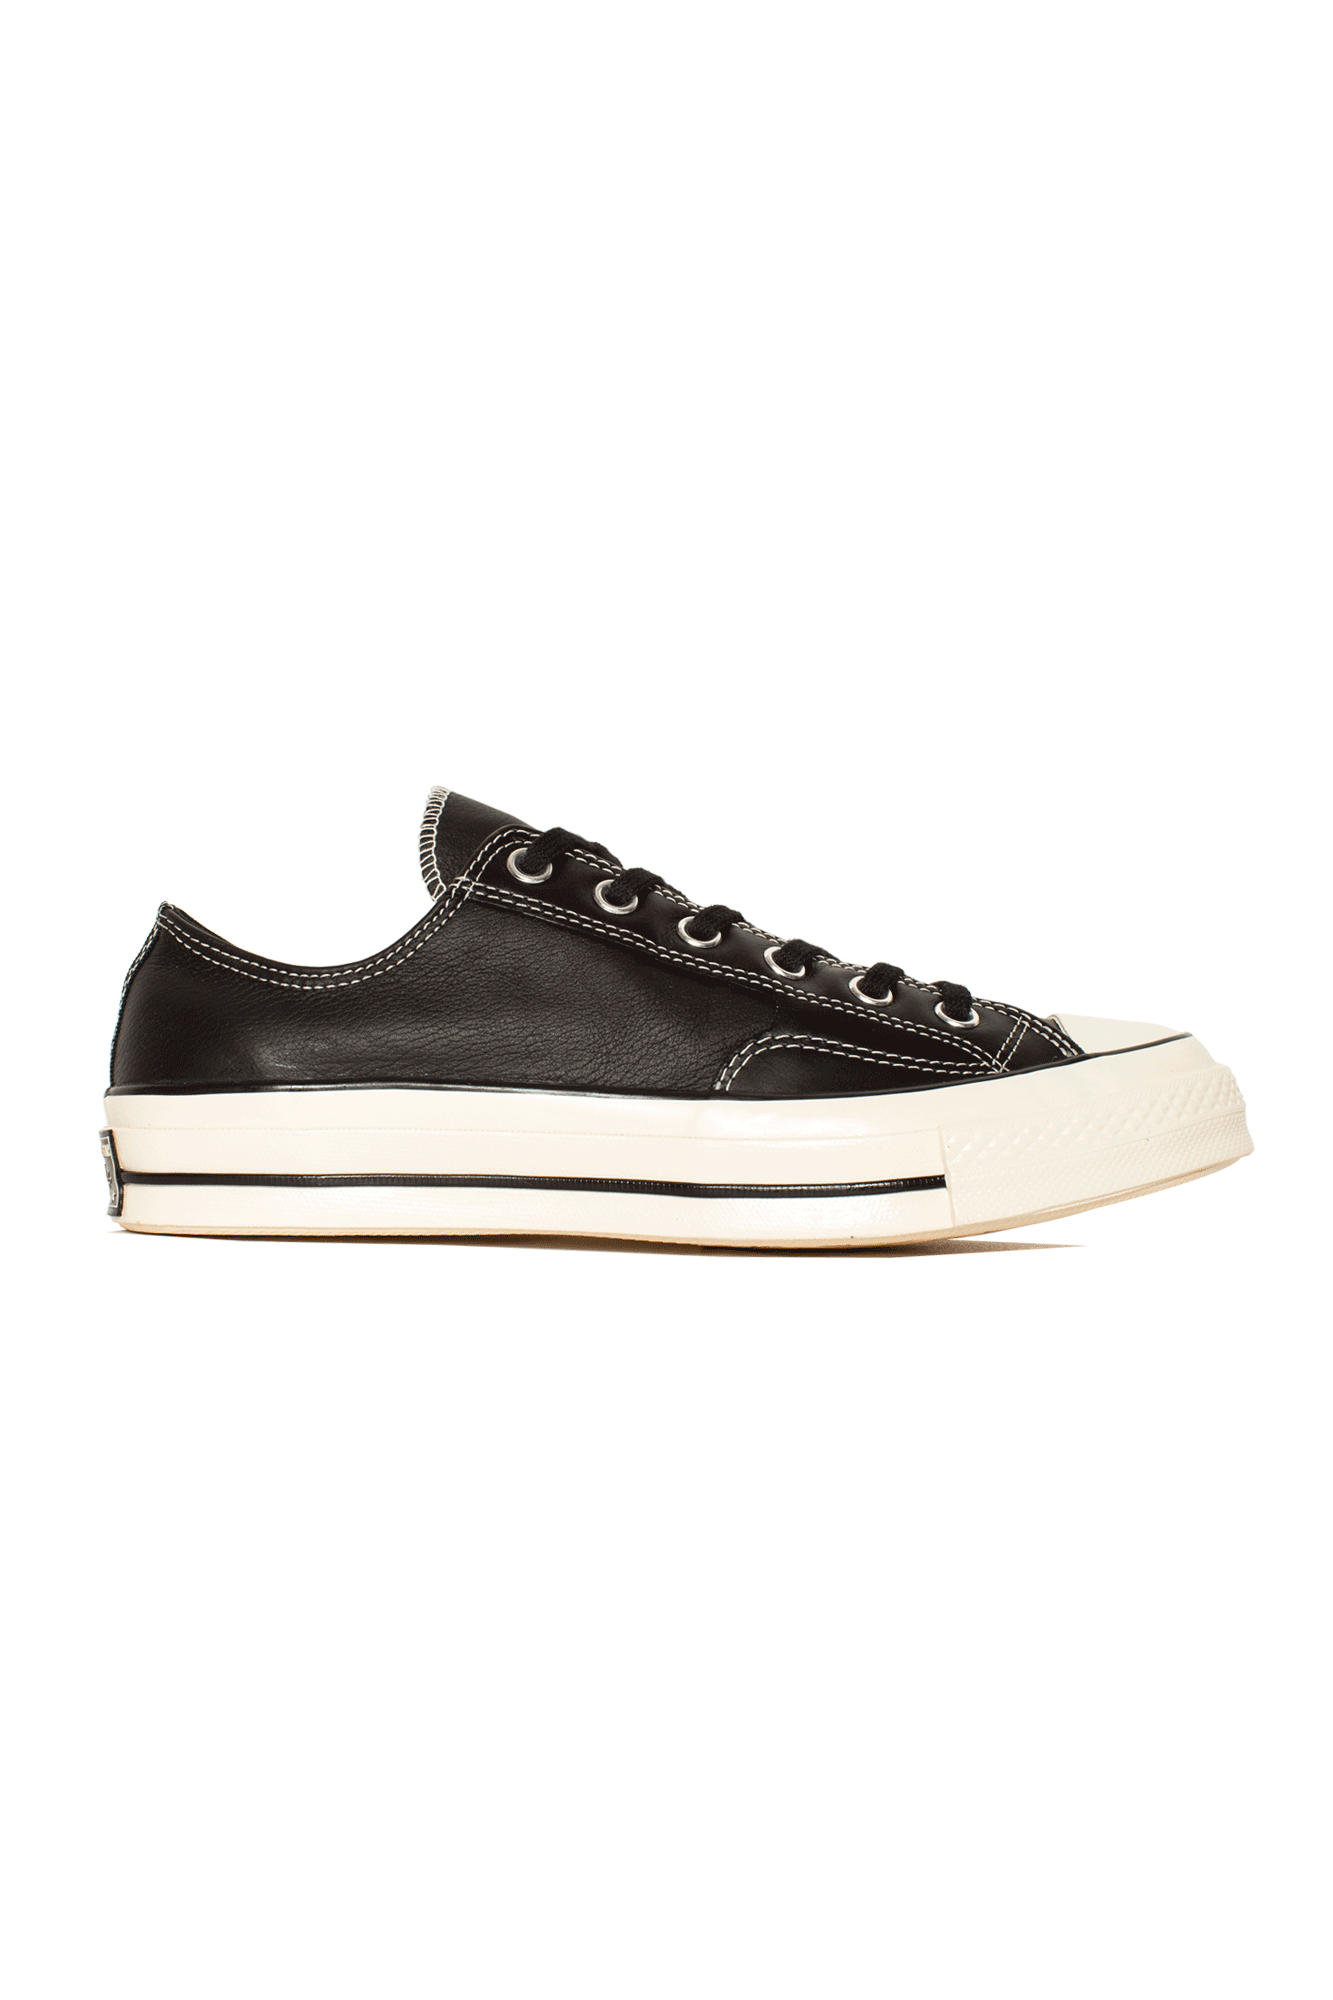 Converse Sneakers Chuck 70 Luxe Leather Nero 163330C#000#C0010#8 - One Block Down